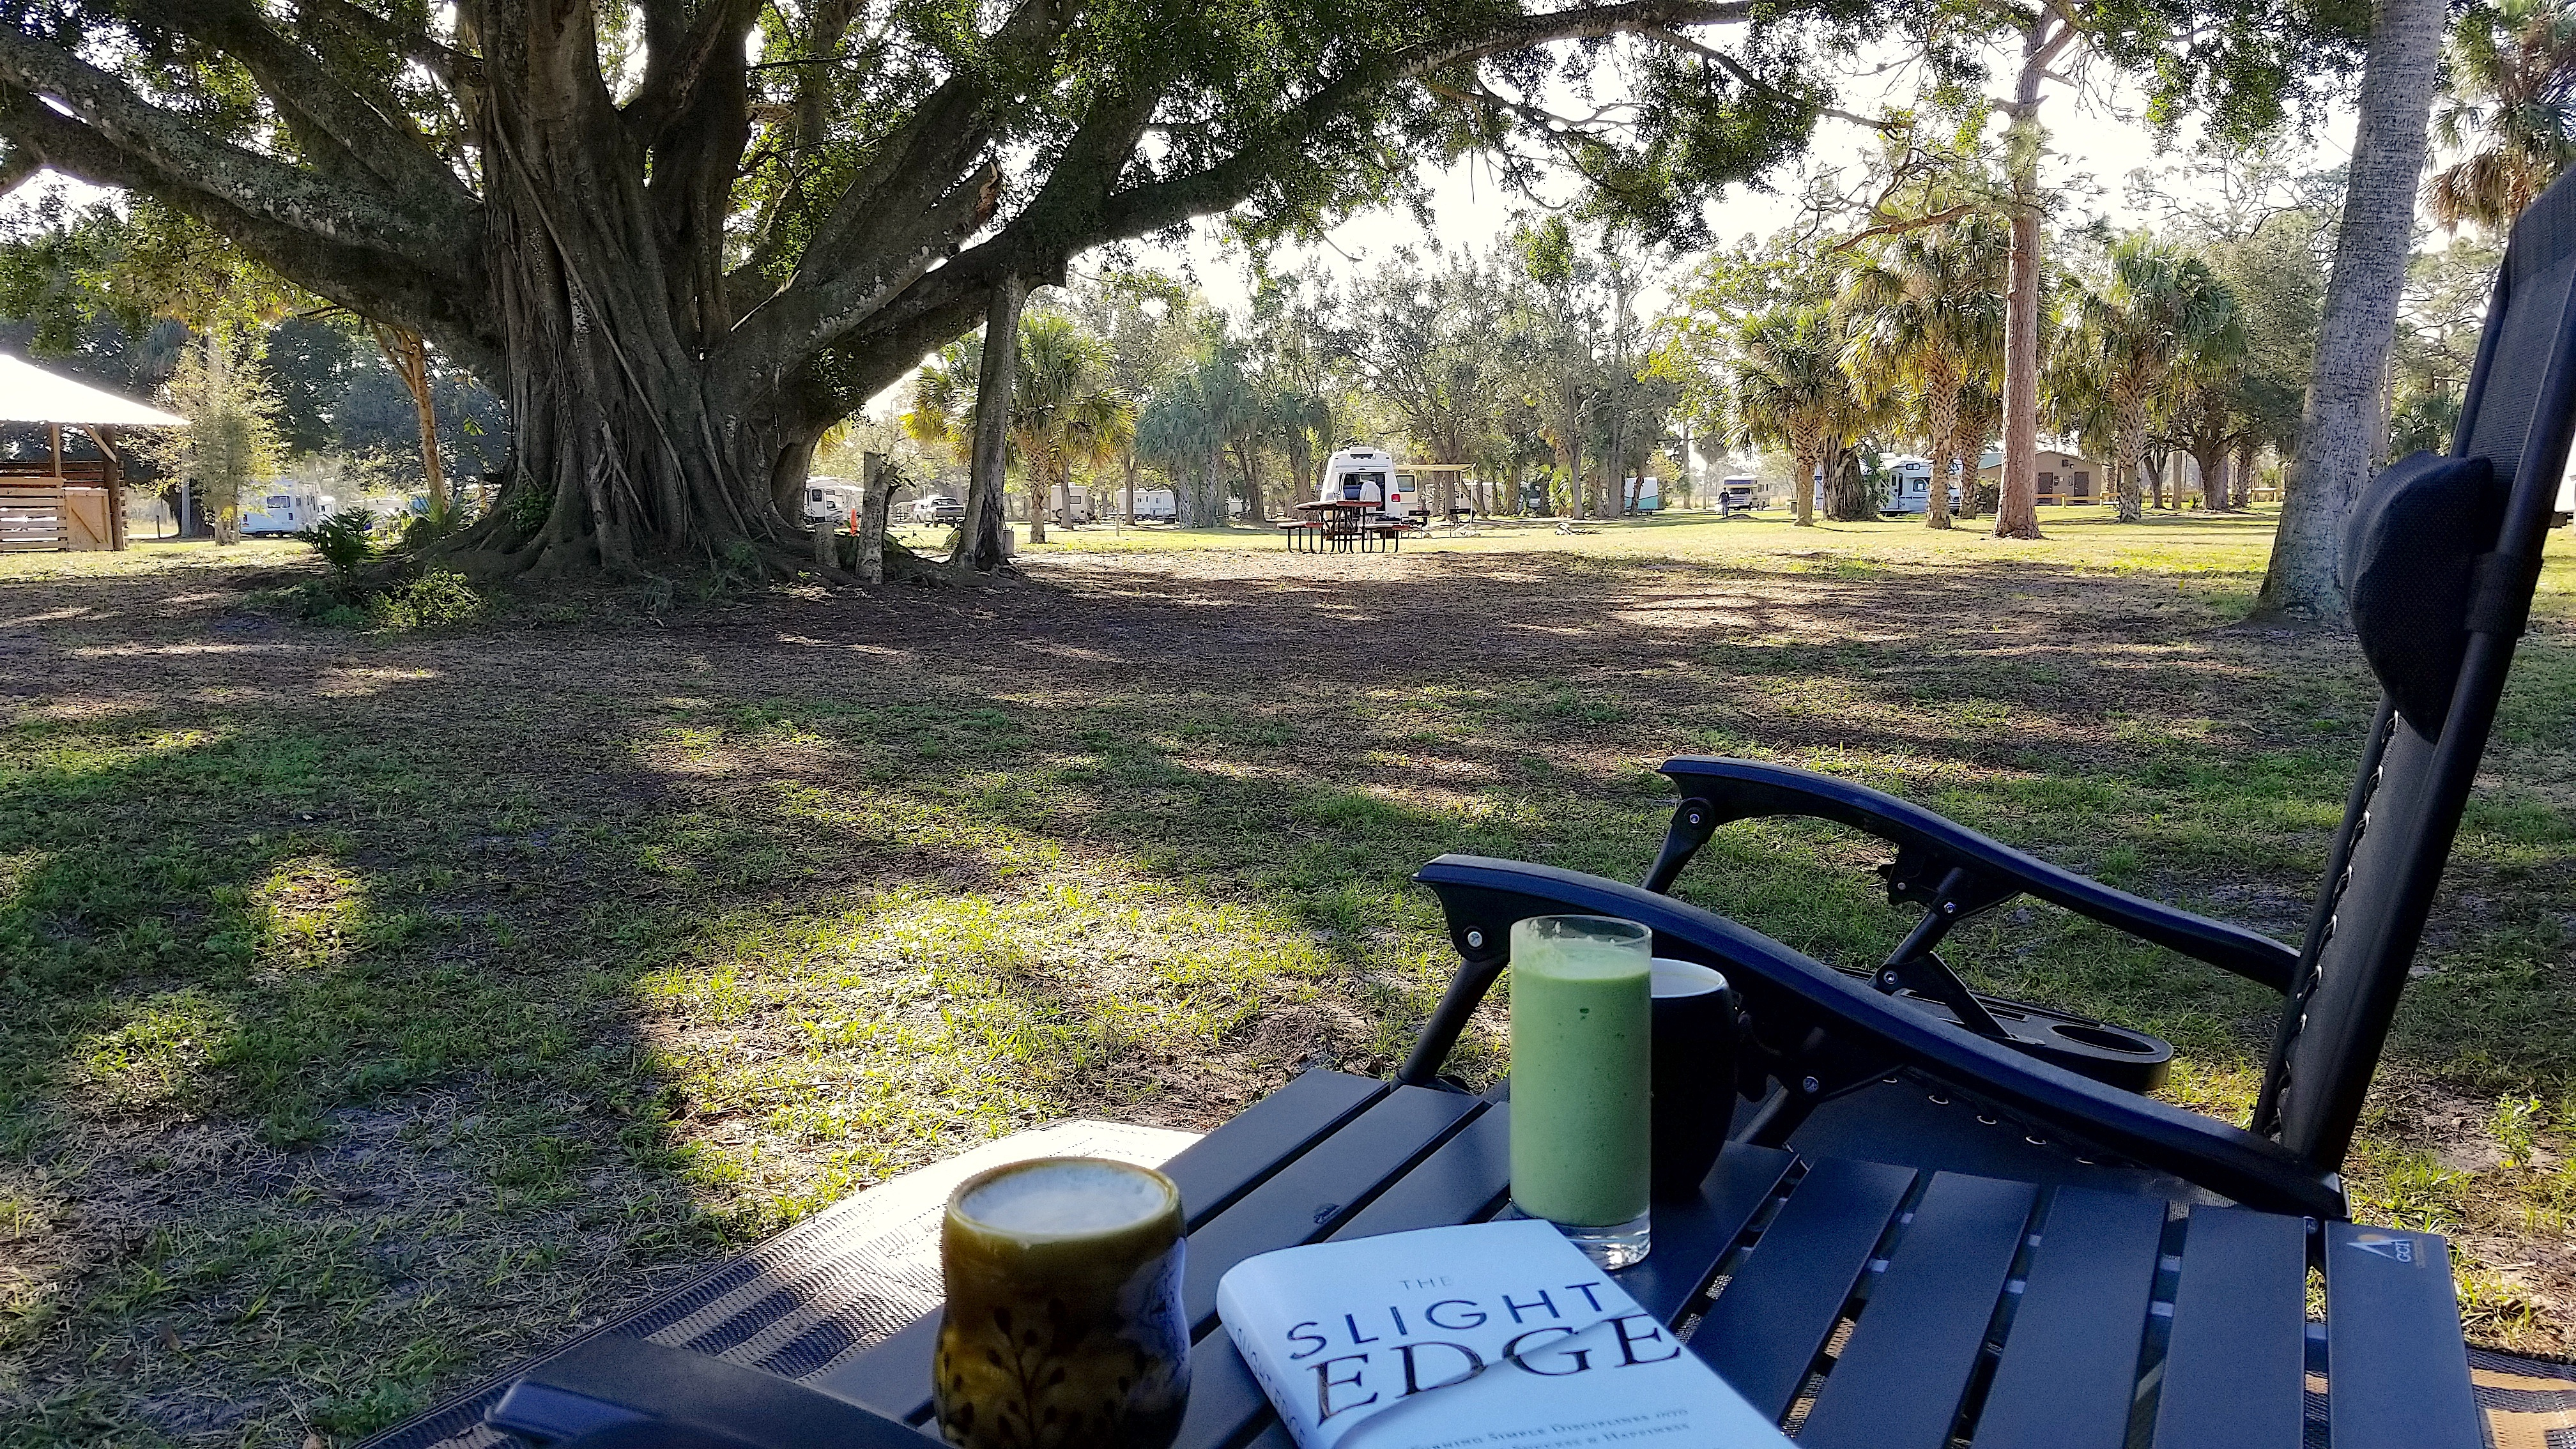 Camping with Smoothie, Coffee, book, and patio chairs with tree